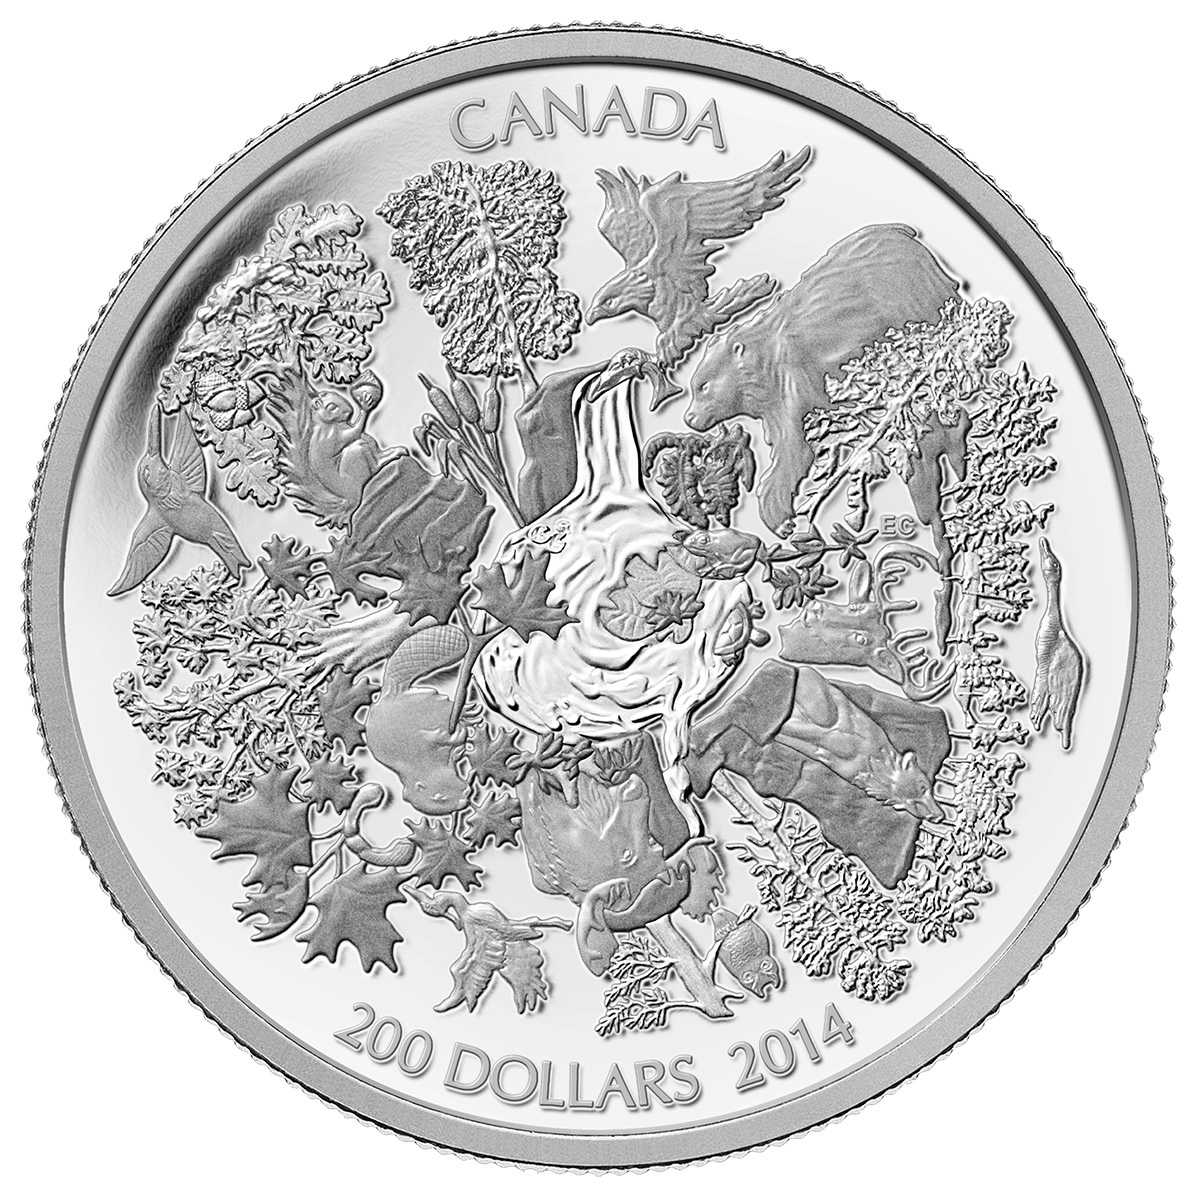 CANADA 2014 $200 Fine Silver Commemorative Coin - Towering Forests - $200 for $200 - #5 In Series